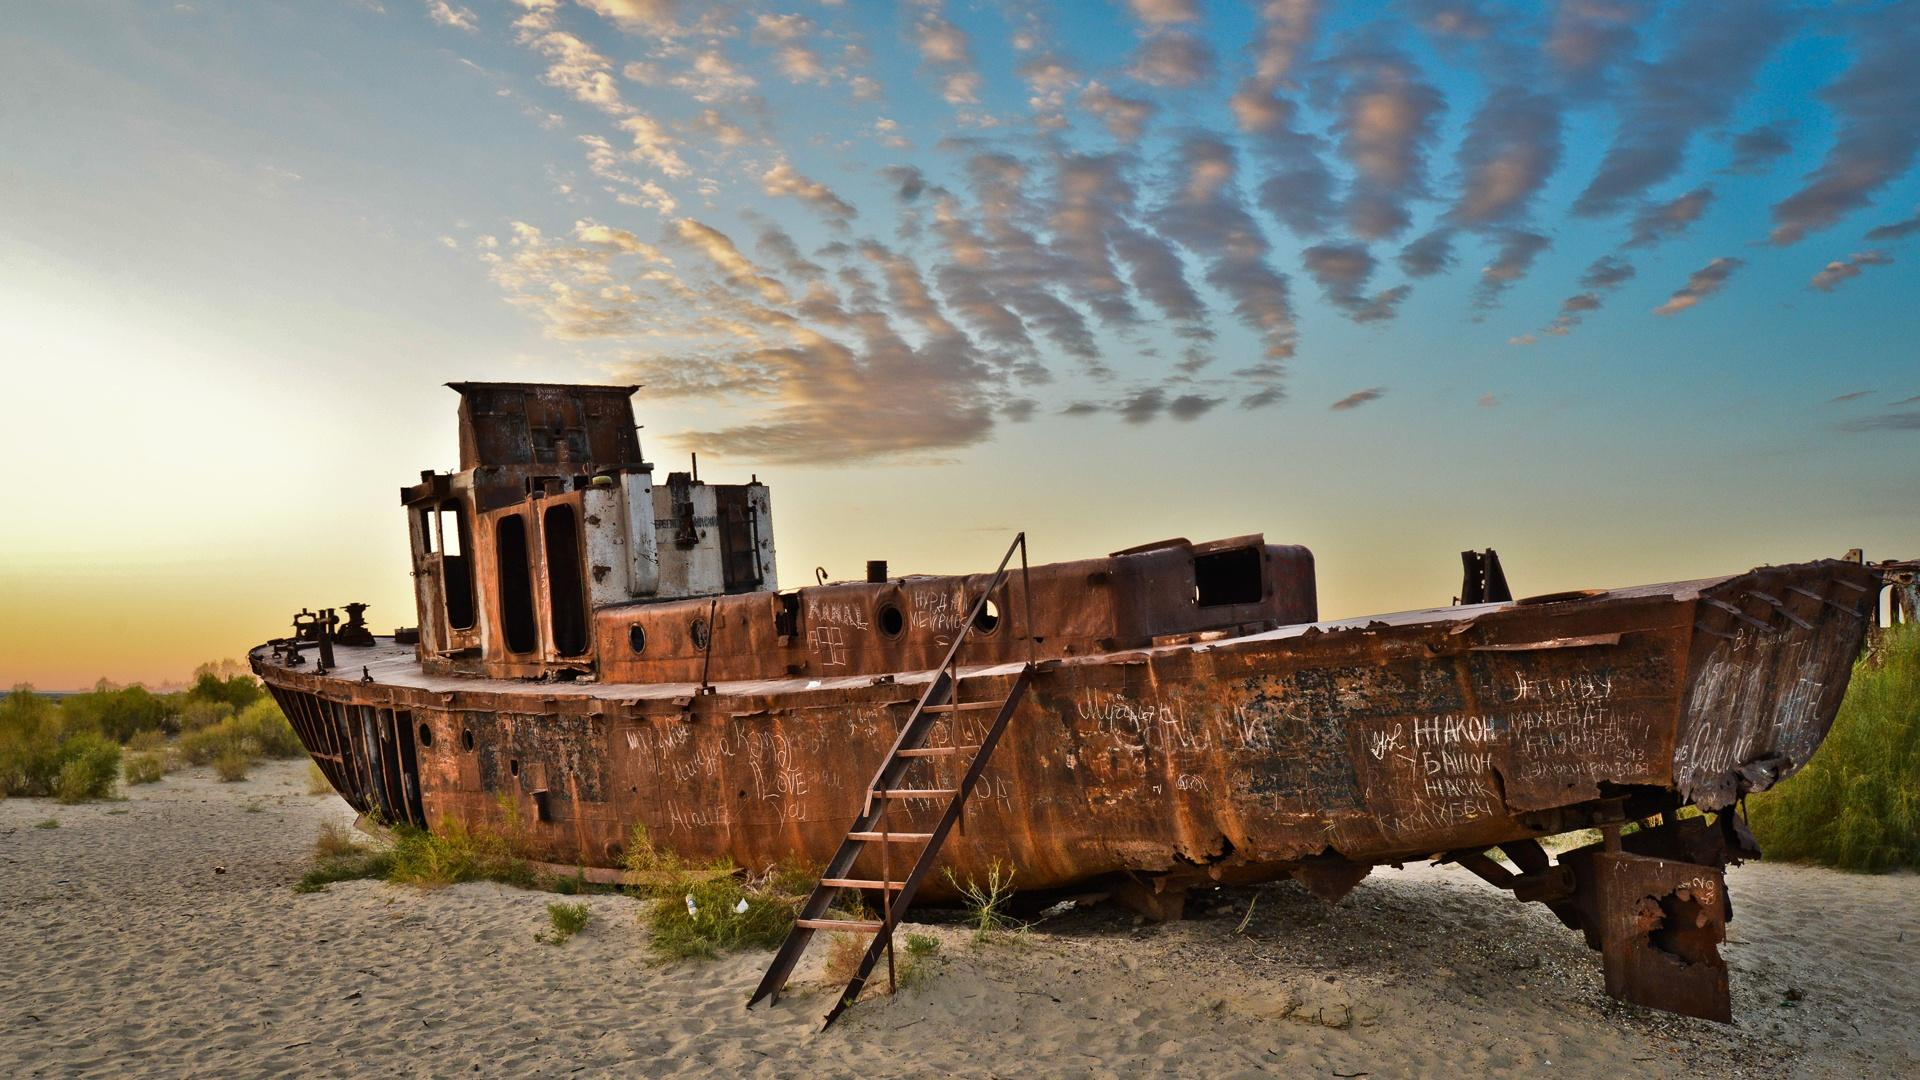 Uzbekistan's Aral Sea was once the 4th largest lake in the world. Rivers that flowed into the Aral sea were diverted to irrigate cotton fields, turning the sea into a desert.